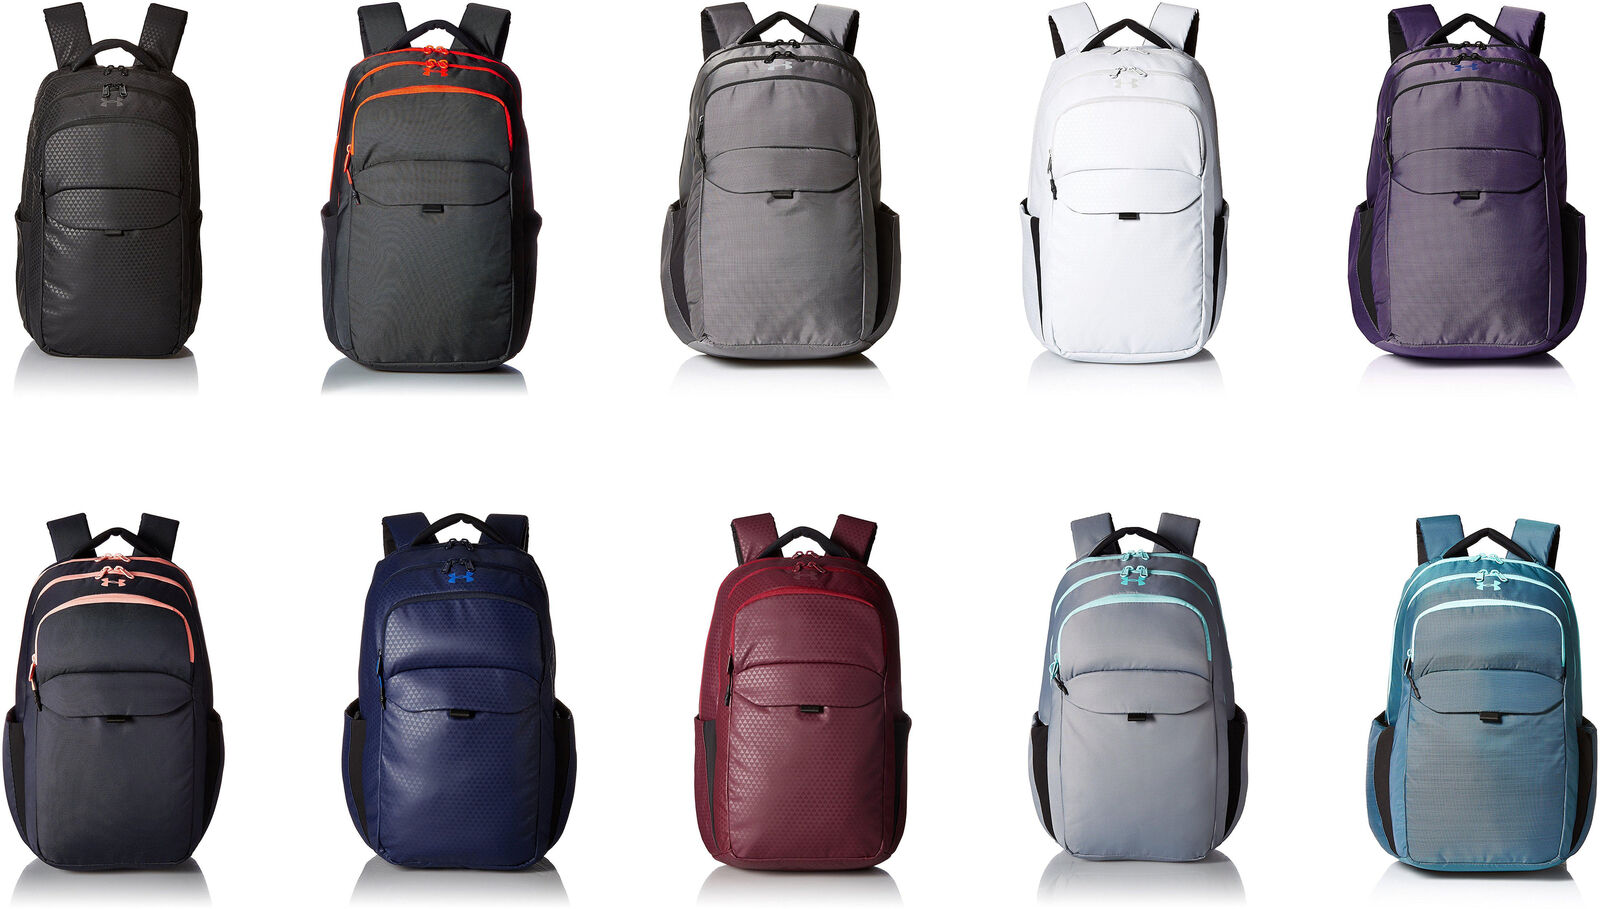 fd9812a2dc5 Under Armour Women's UA Motivator Backpack, 10 Colors | eBay